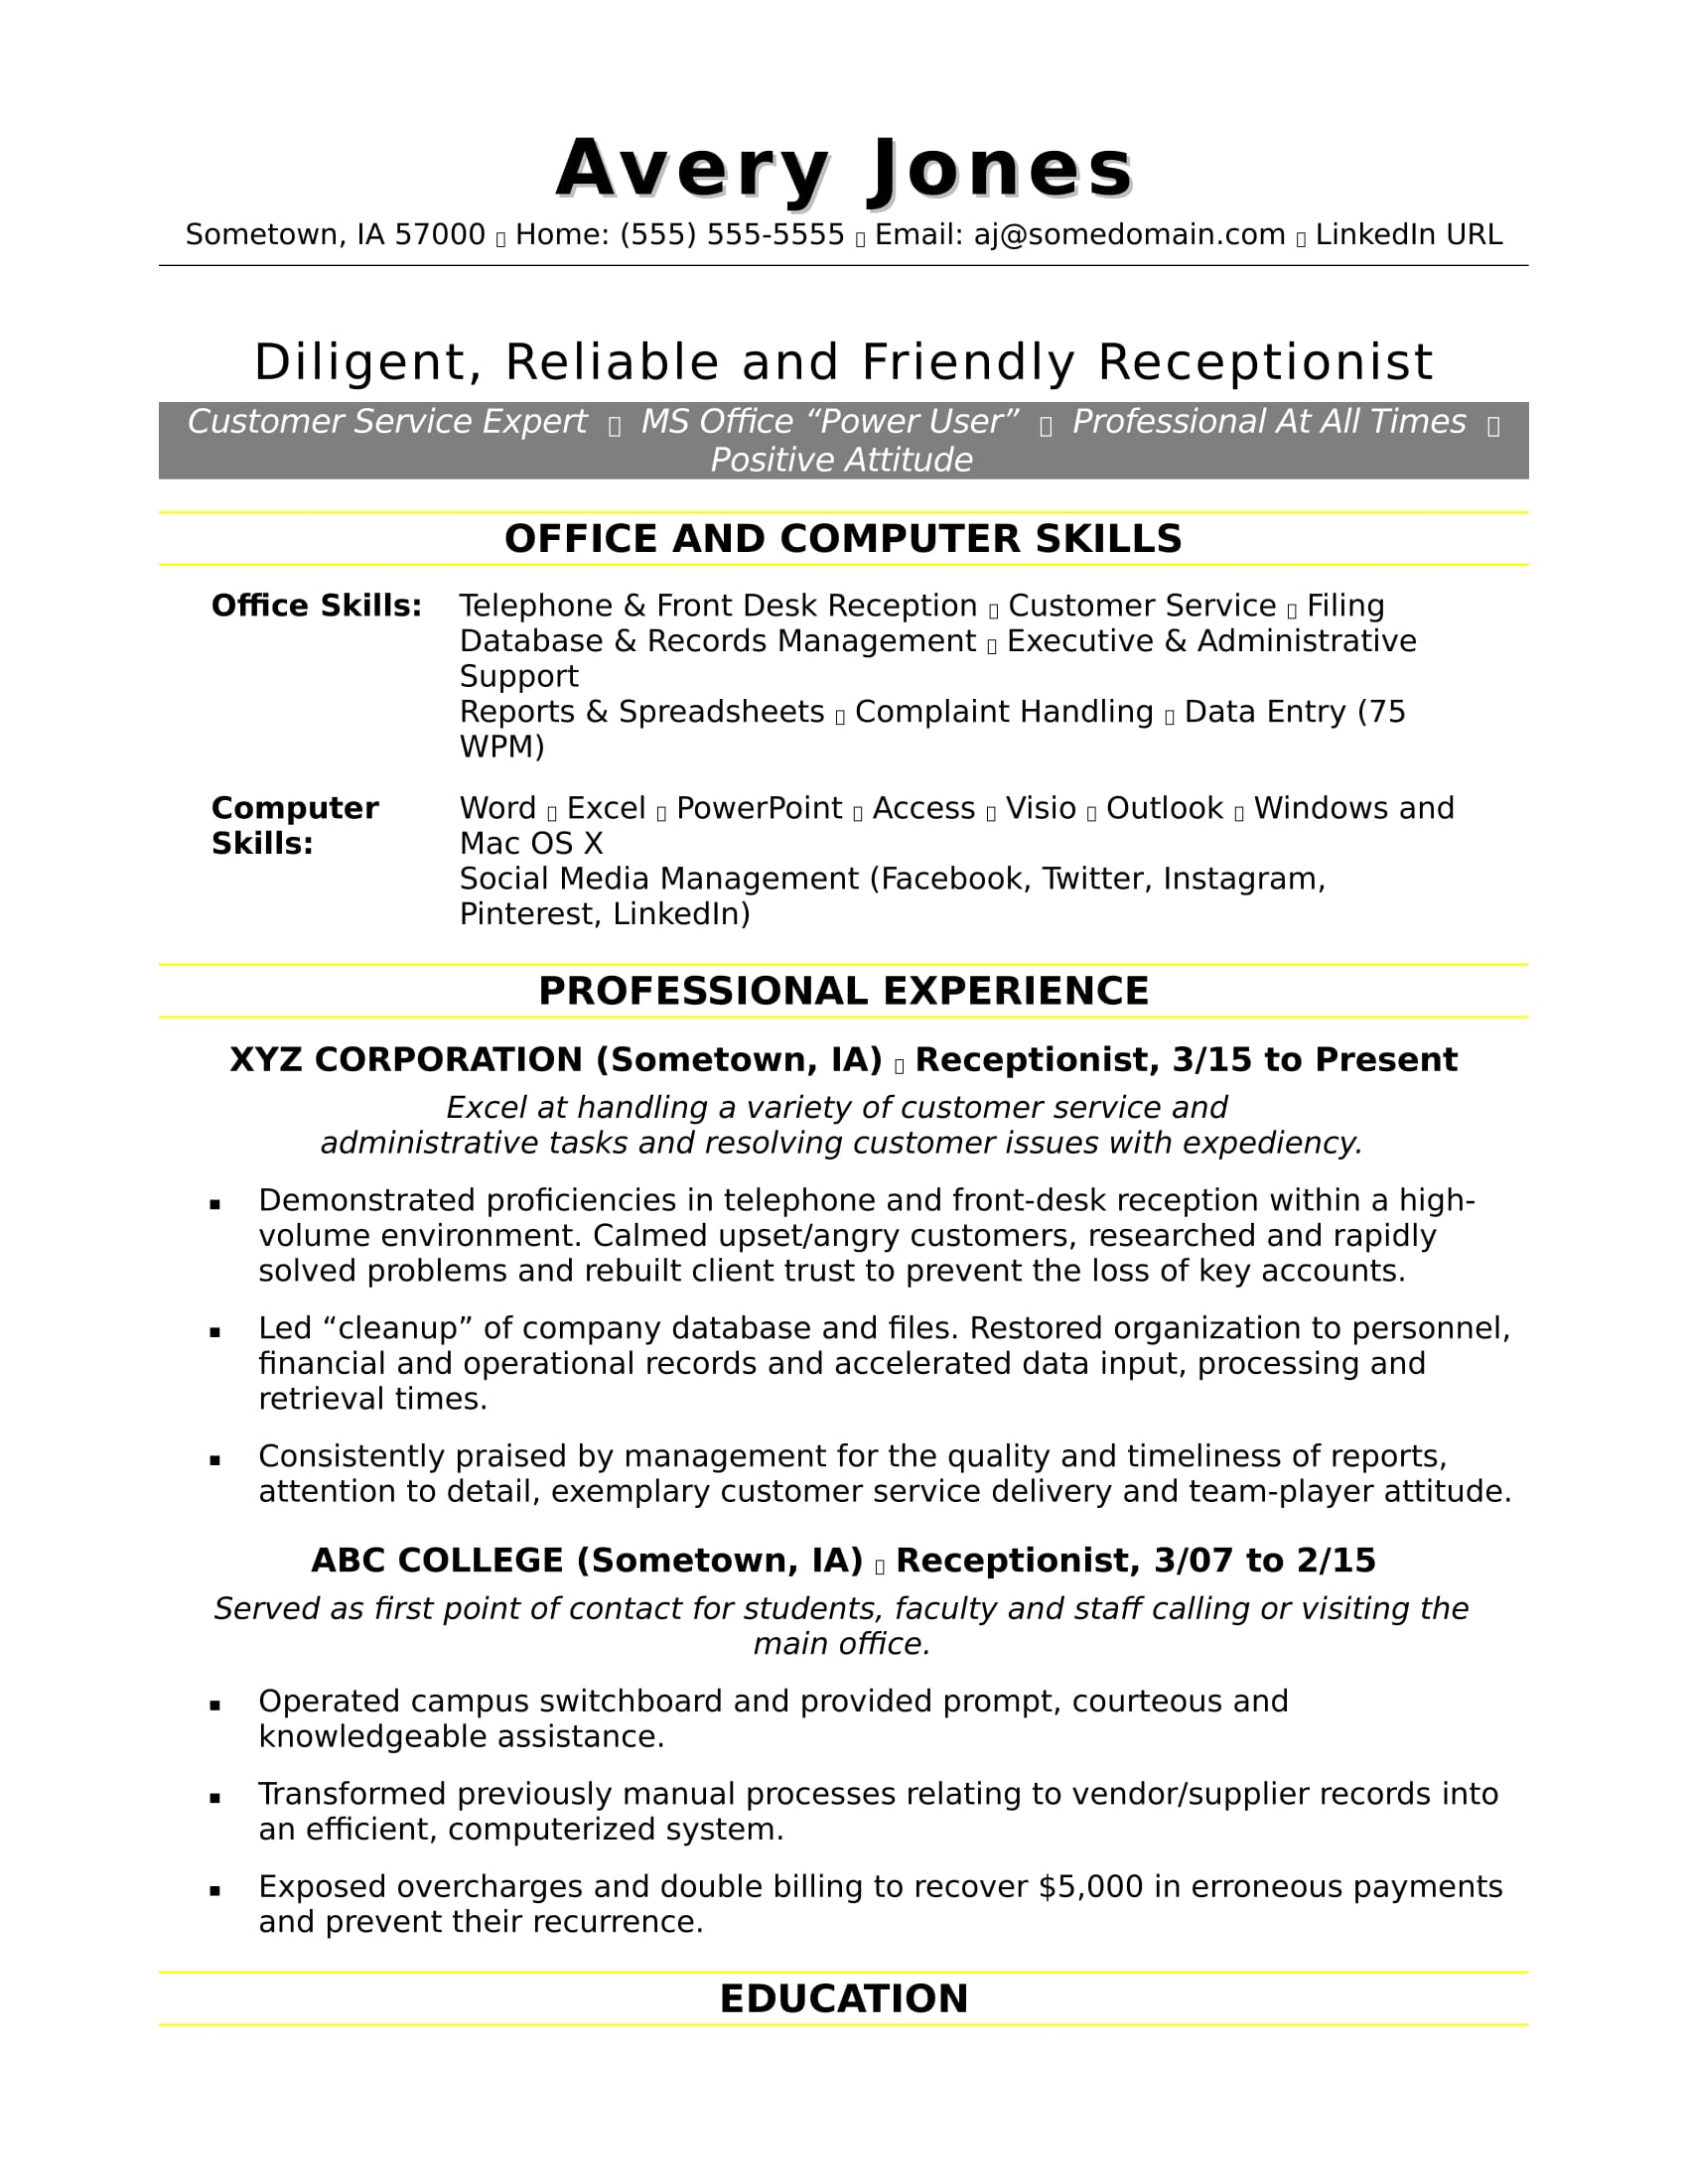 receptionist resume sample monster for freshers looking the first job electrician barista Resume Sample Resume For Freshers Looking For The First Job